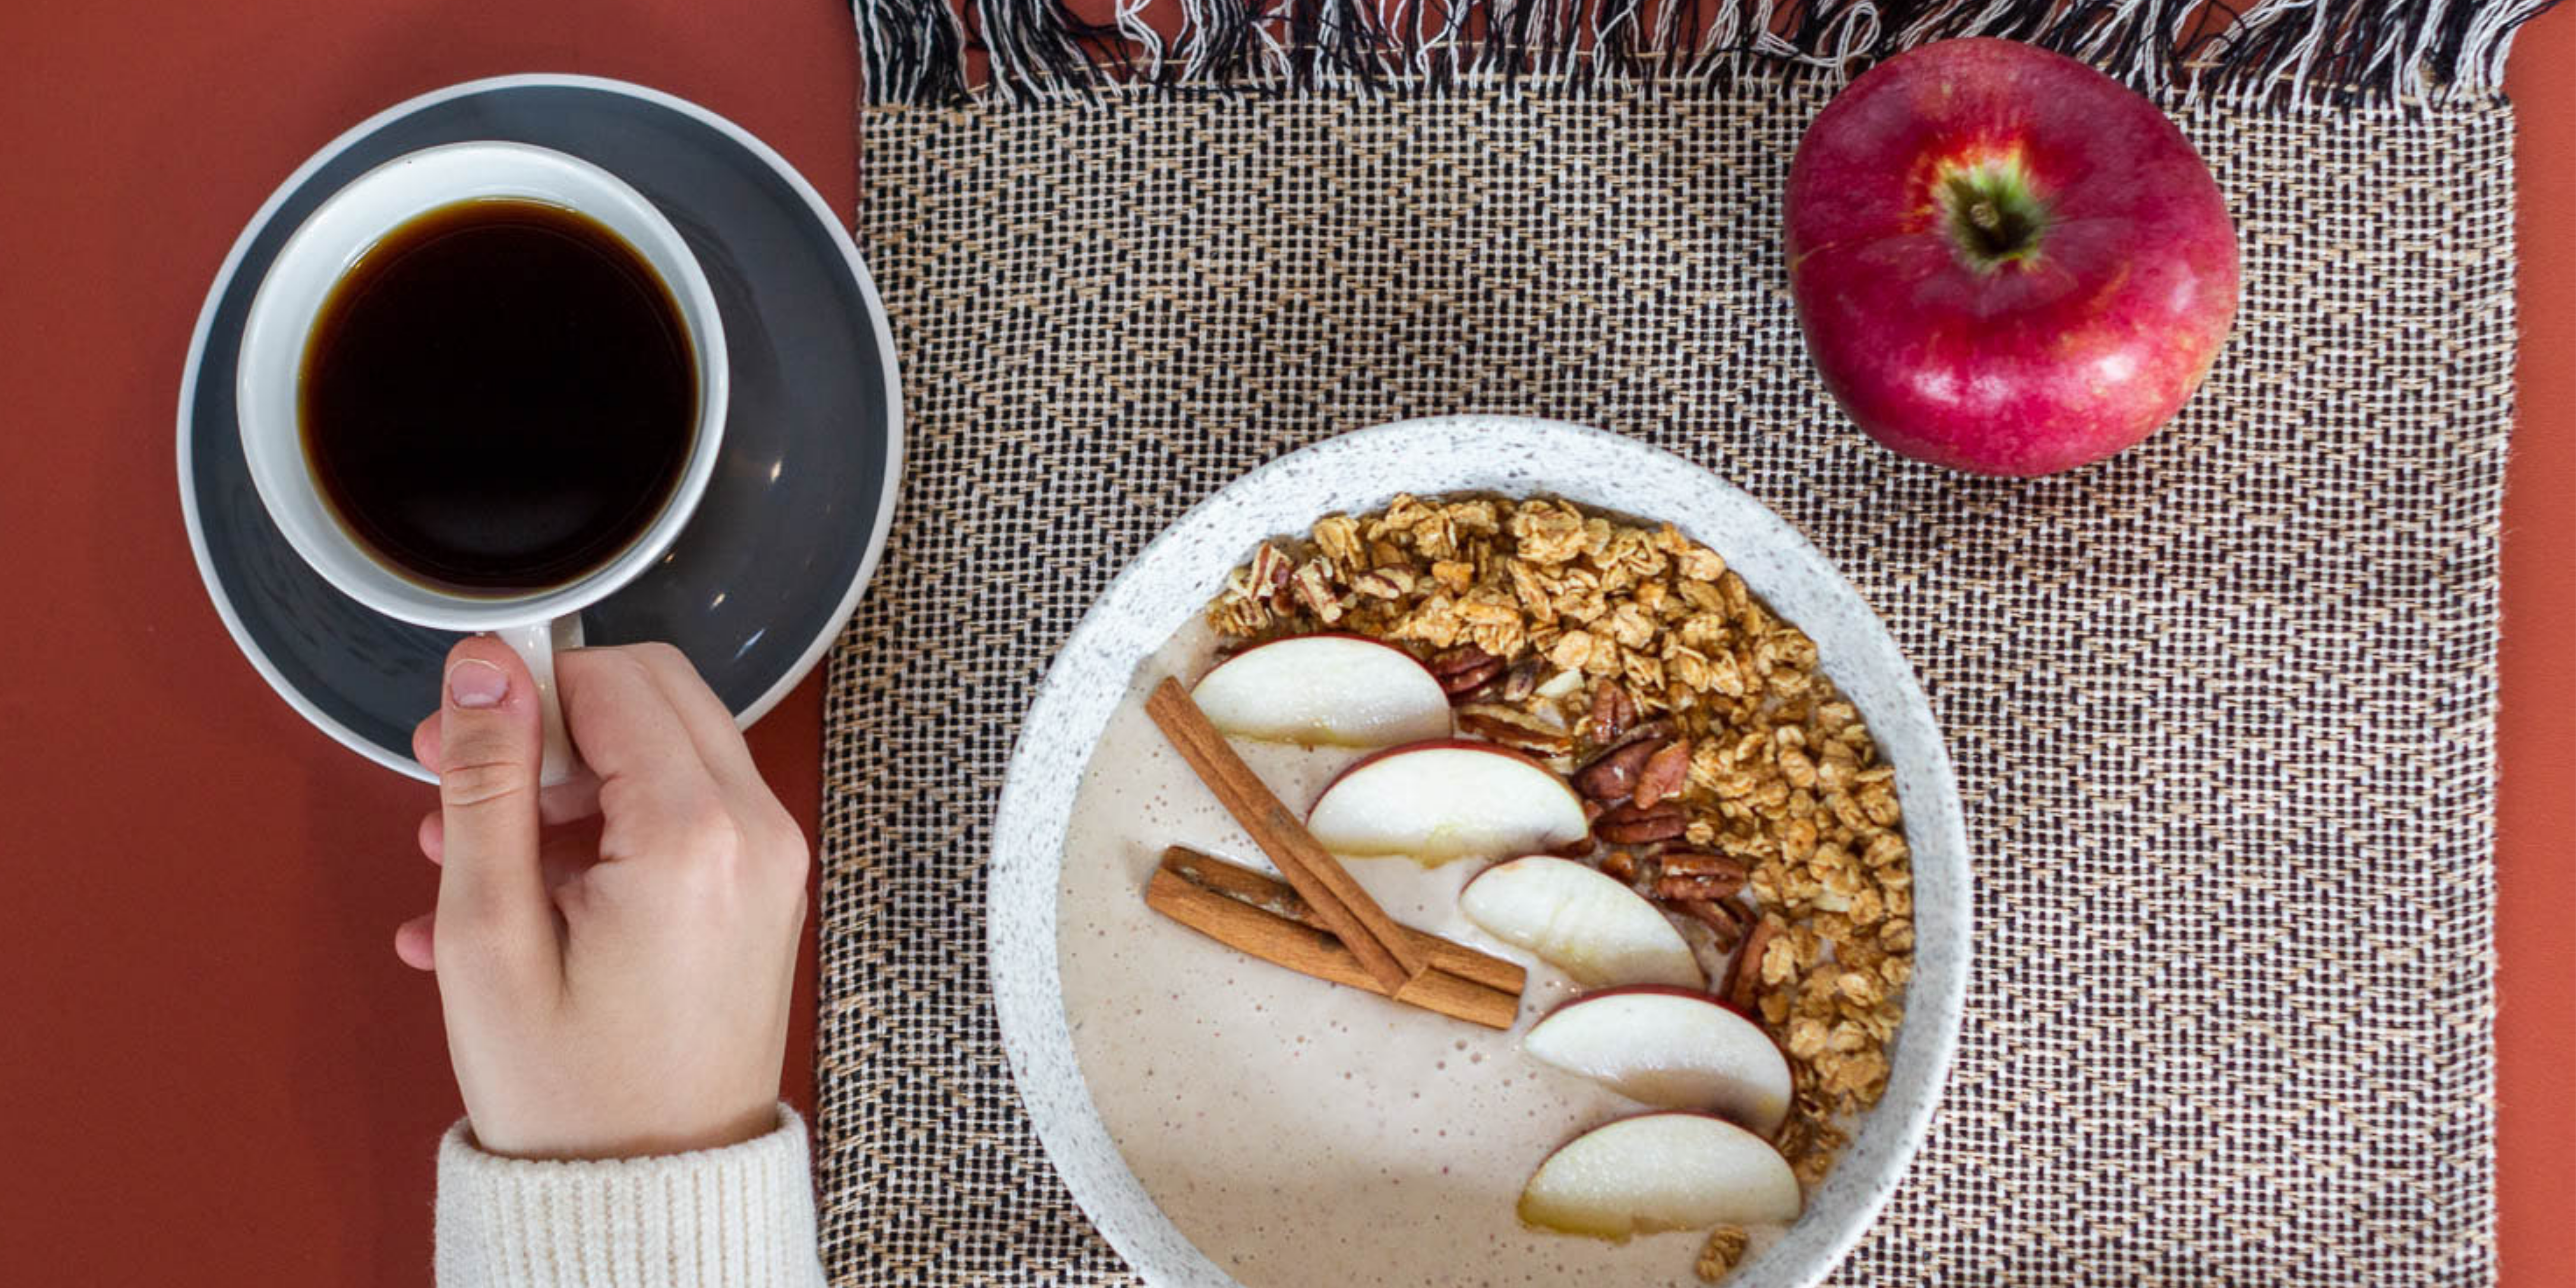 How to Make an Apple Pie Smoothie Bowl This Fall